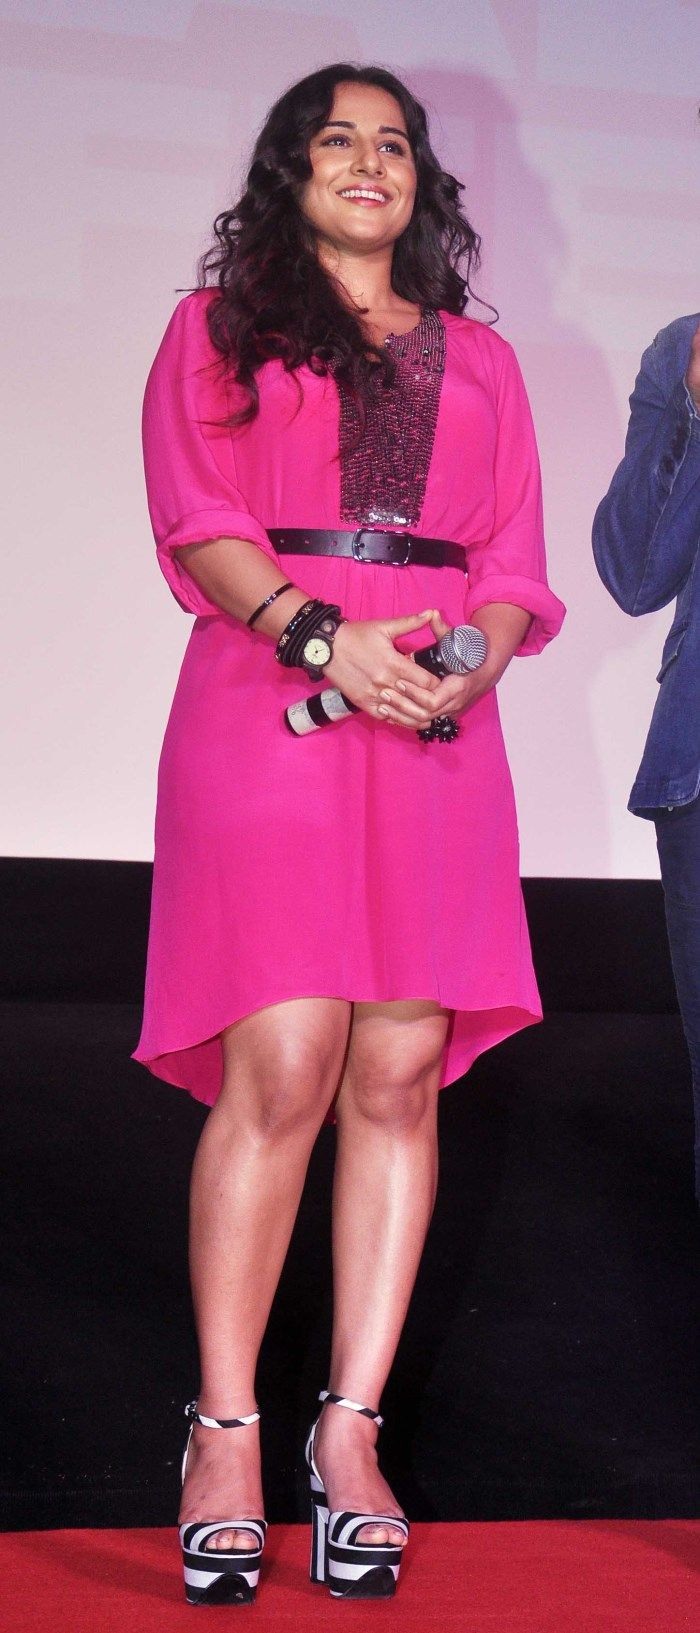 Actress Vidya Balan In Short Pink Dress Hot Stills -8928